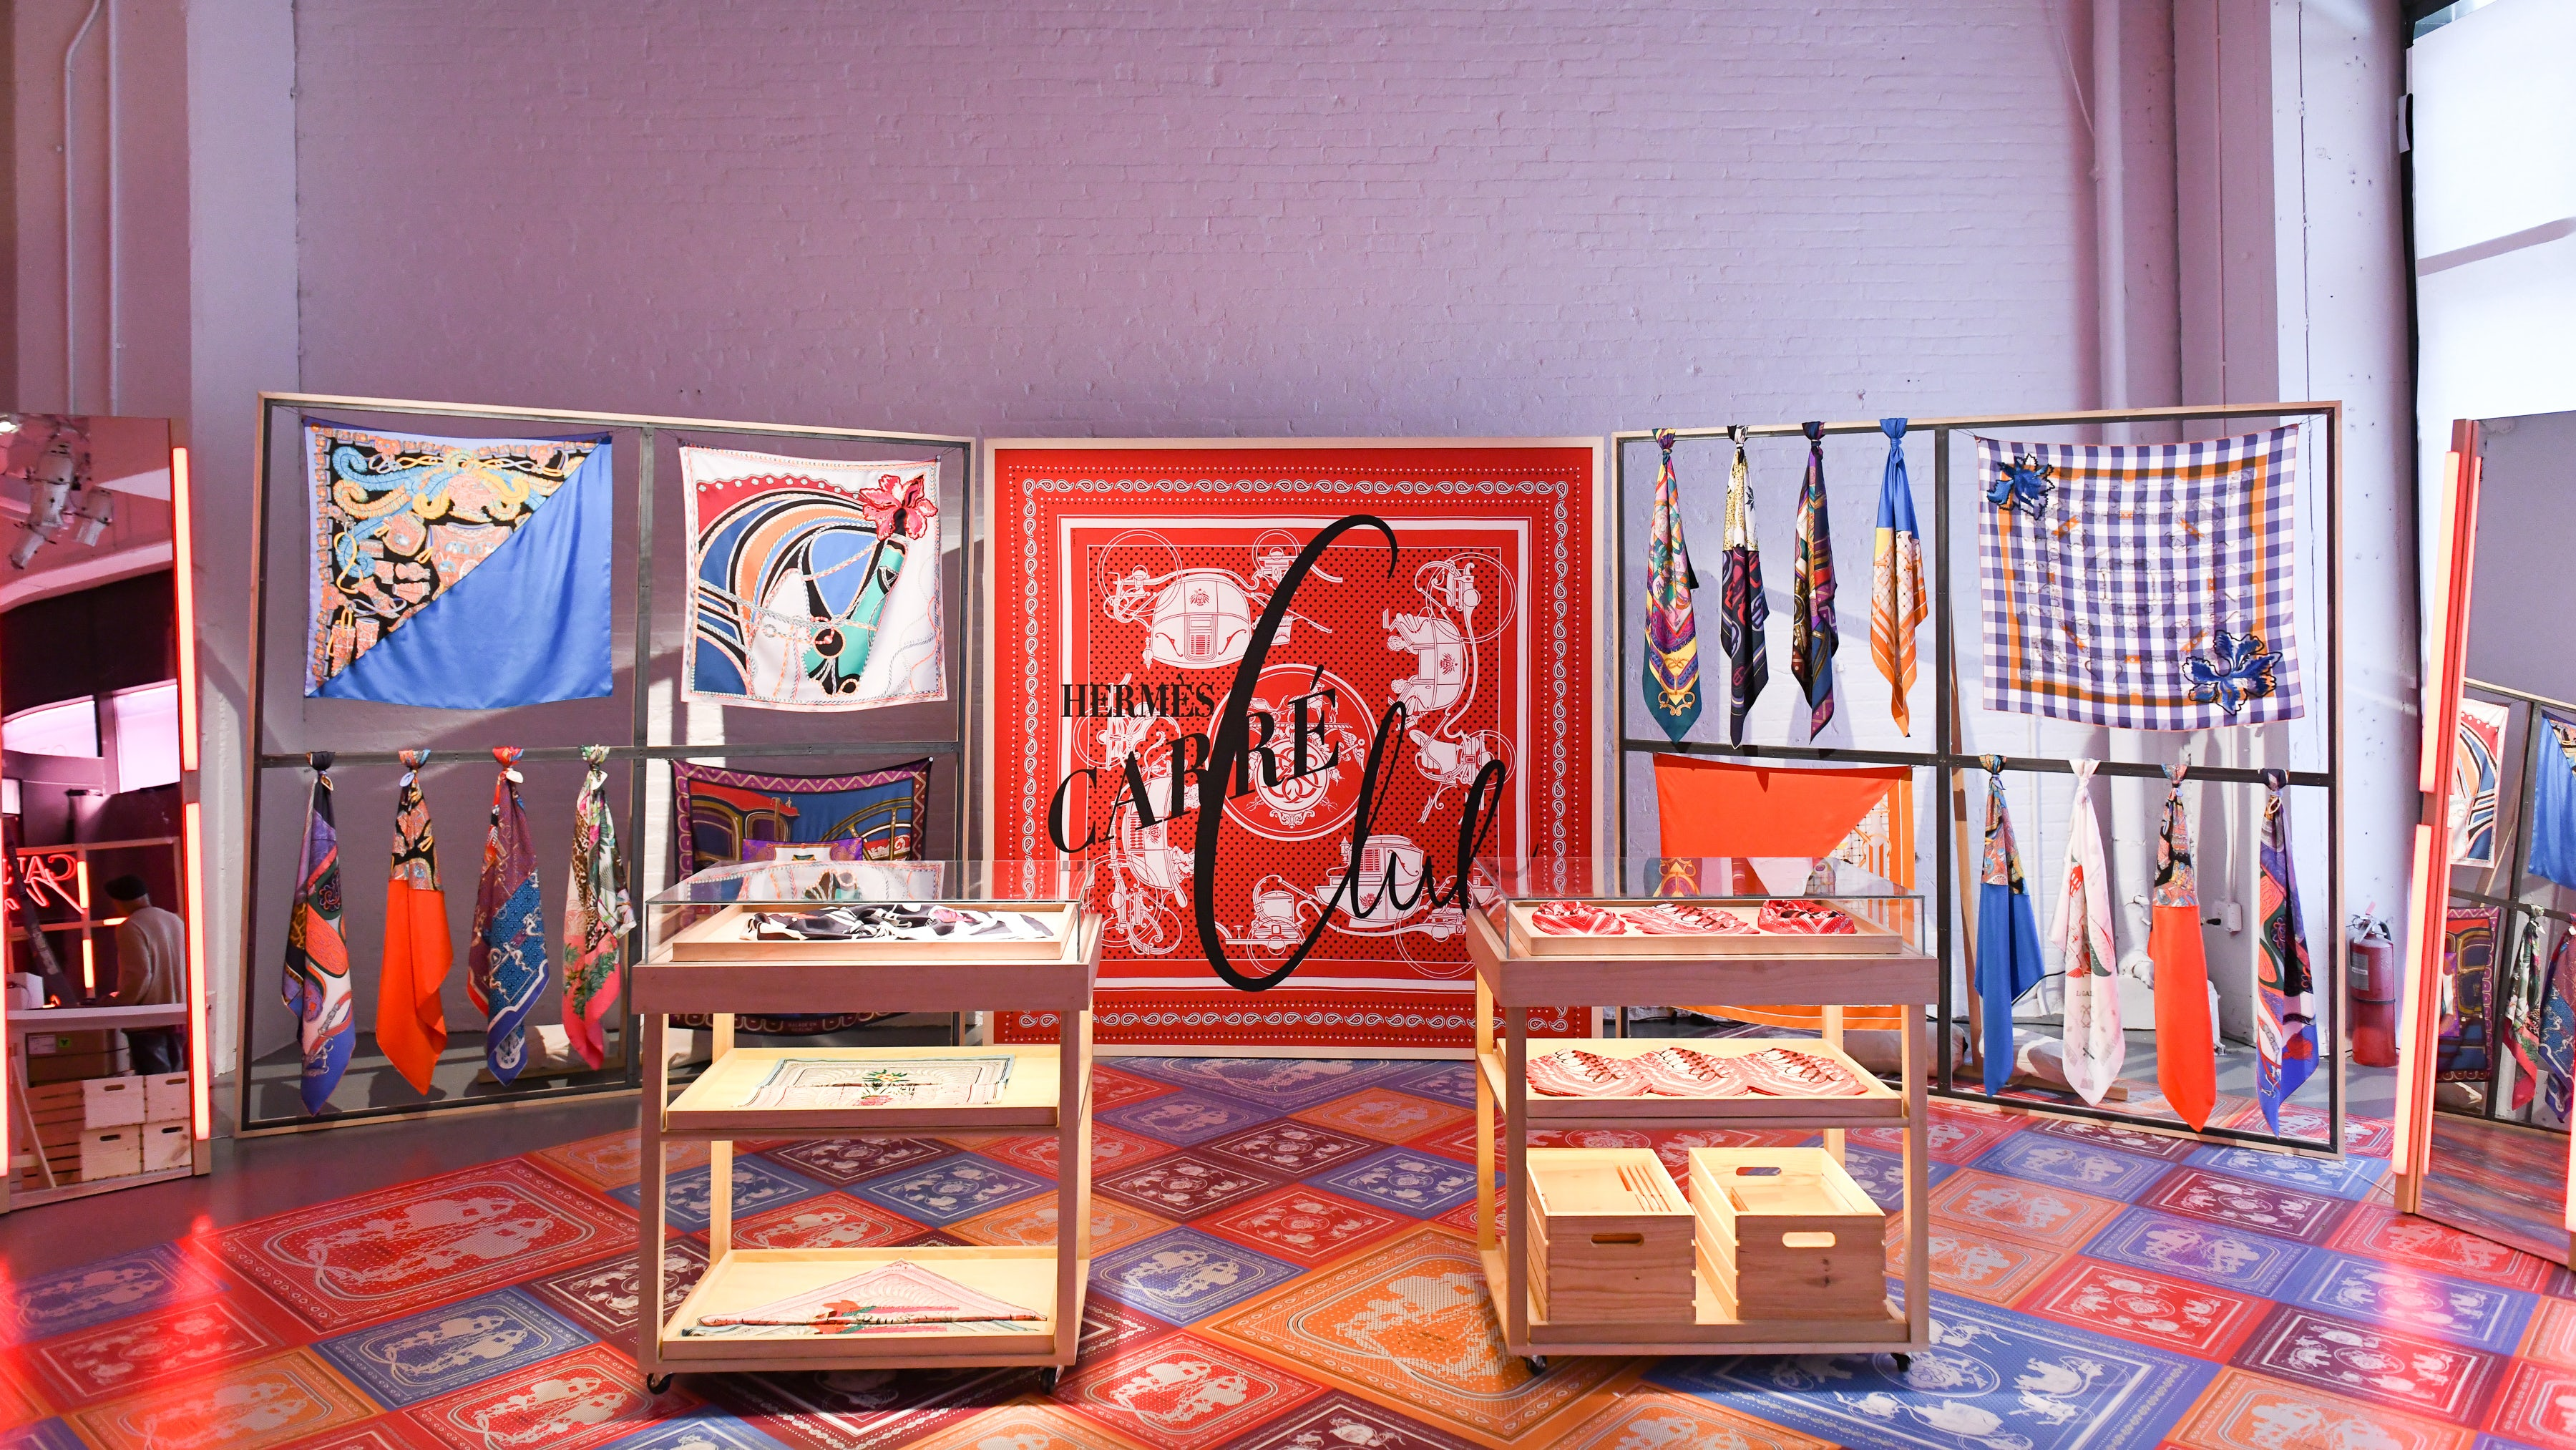 Hermès Carré Club pop-up in New York | Source: Courtesy